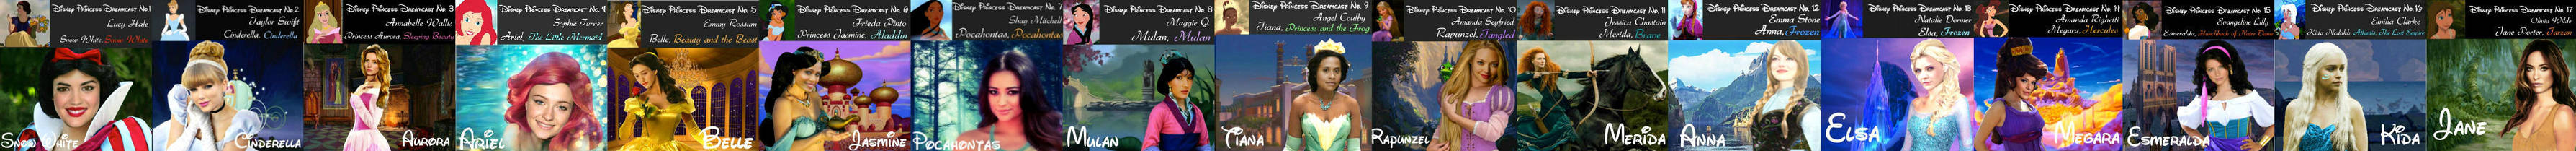 My Disney Princess Dreamcasts Banner by nickelbackloverxoxox